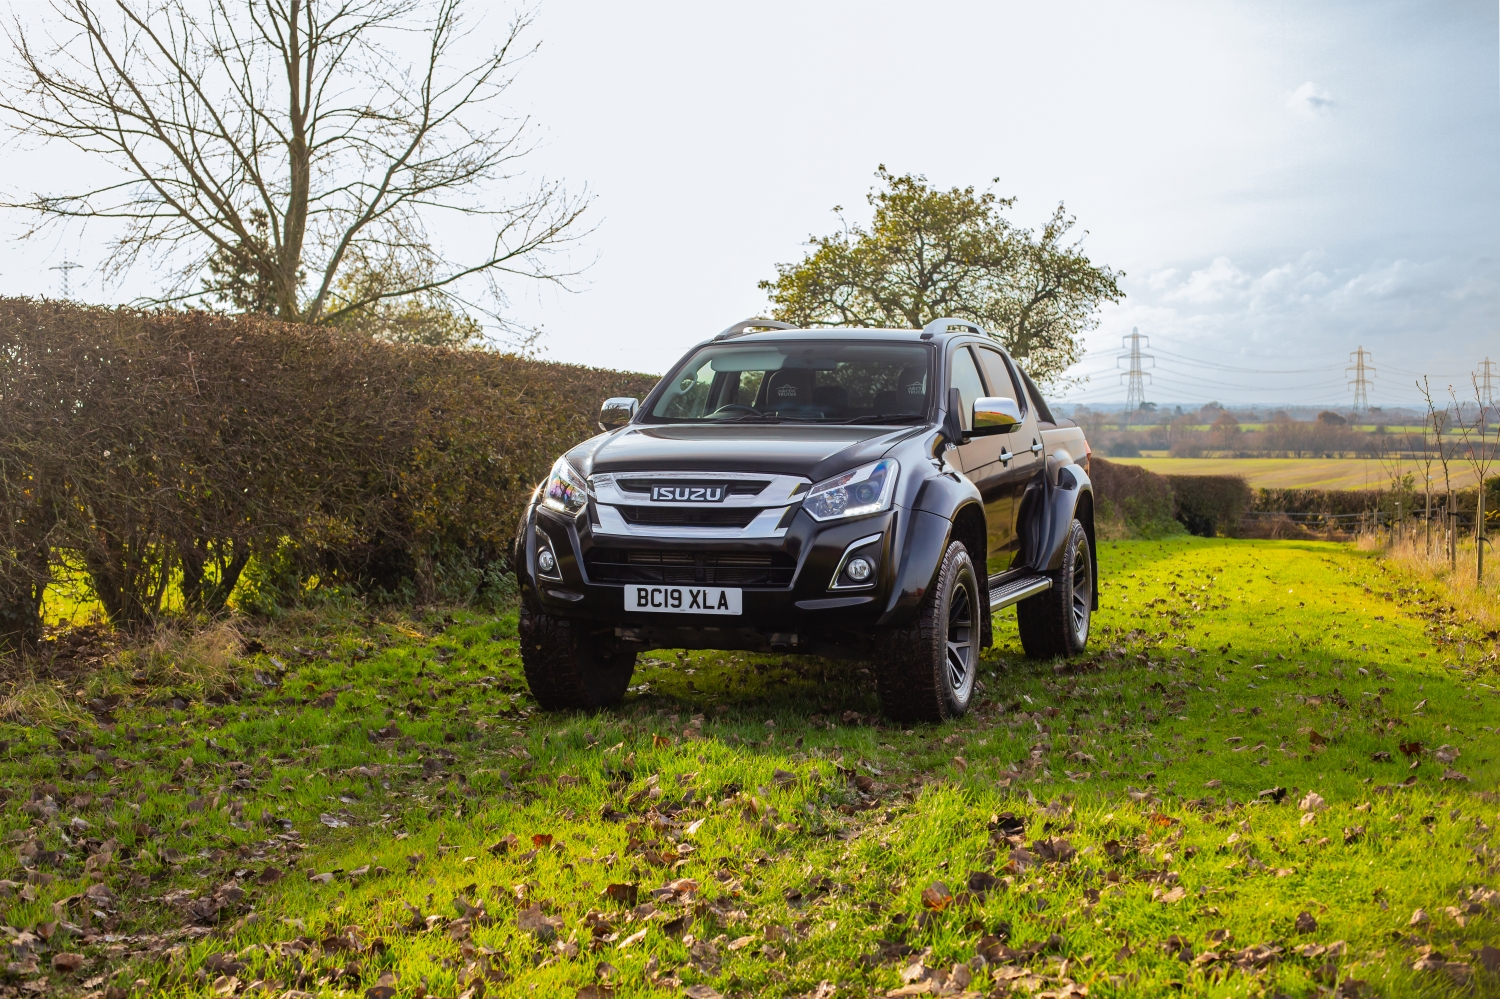 The D-Max is another great off-roader